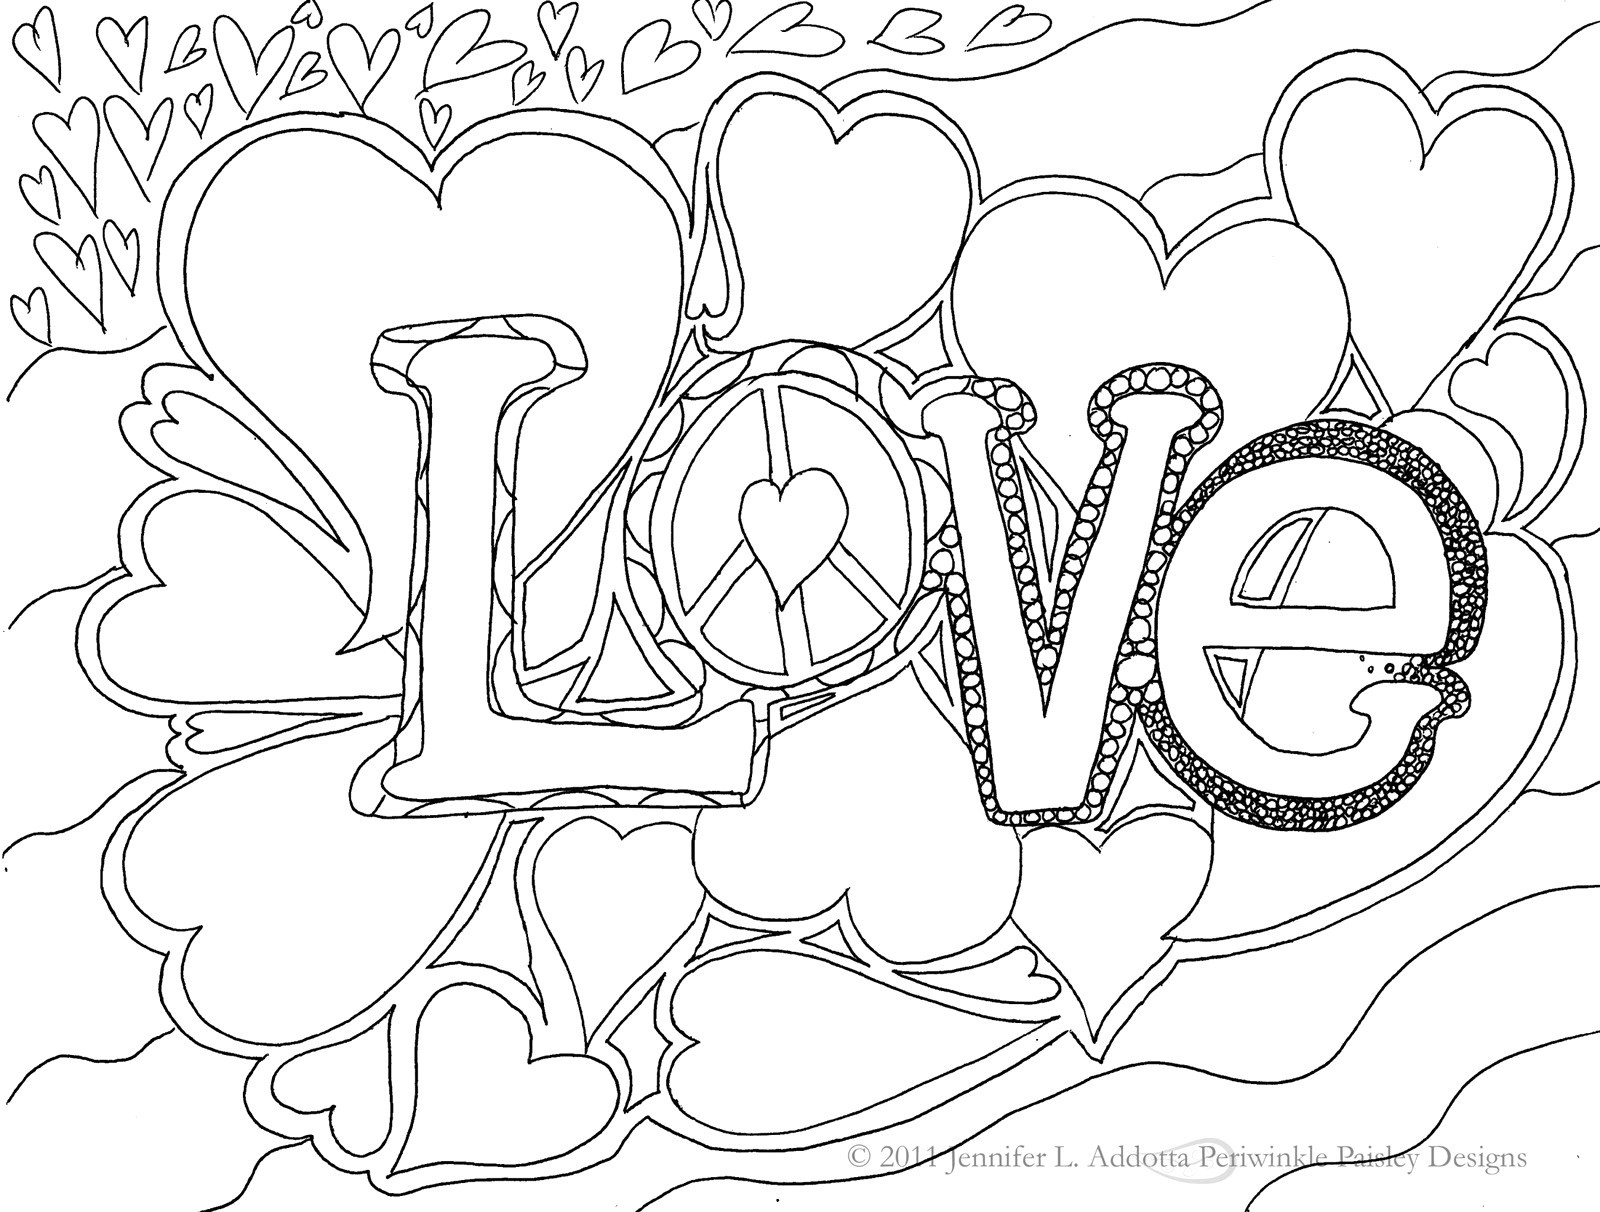 Valentines Day Coloring Pages For Adults Valentine Day Coloring Sheets Elegant Valentines Pages And For